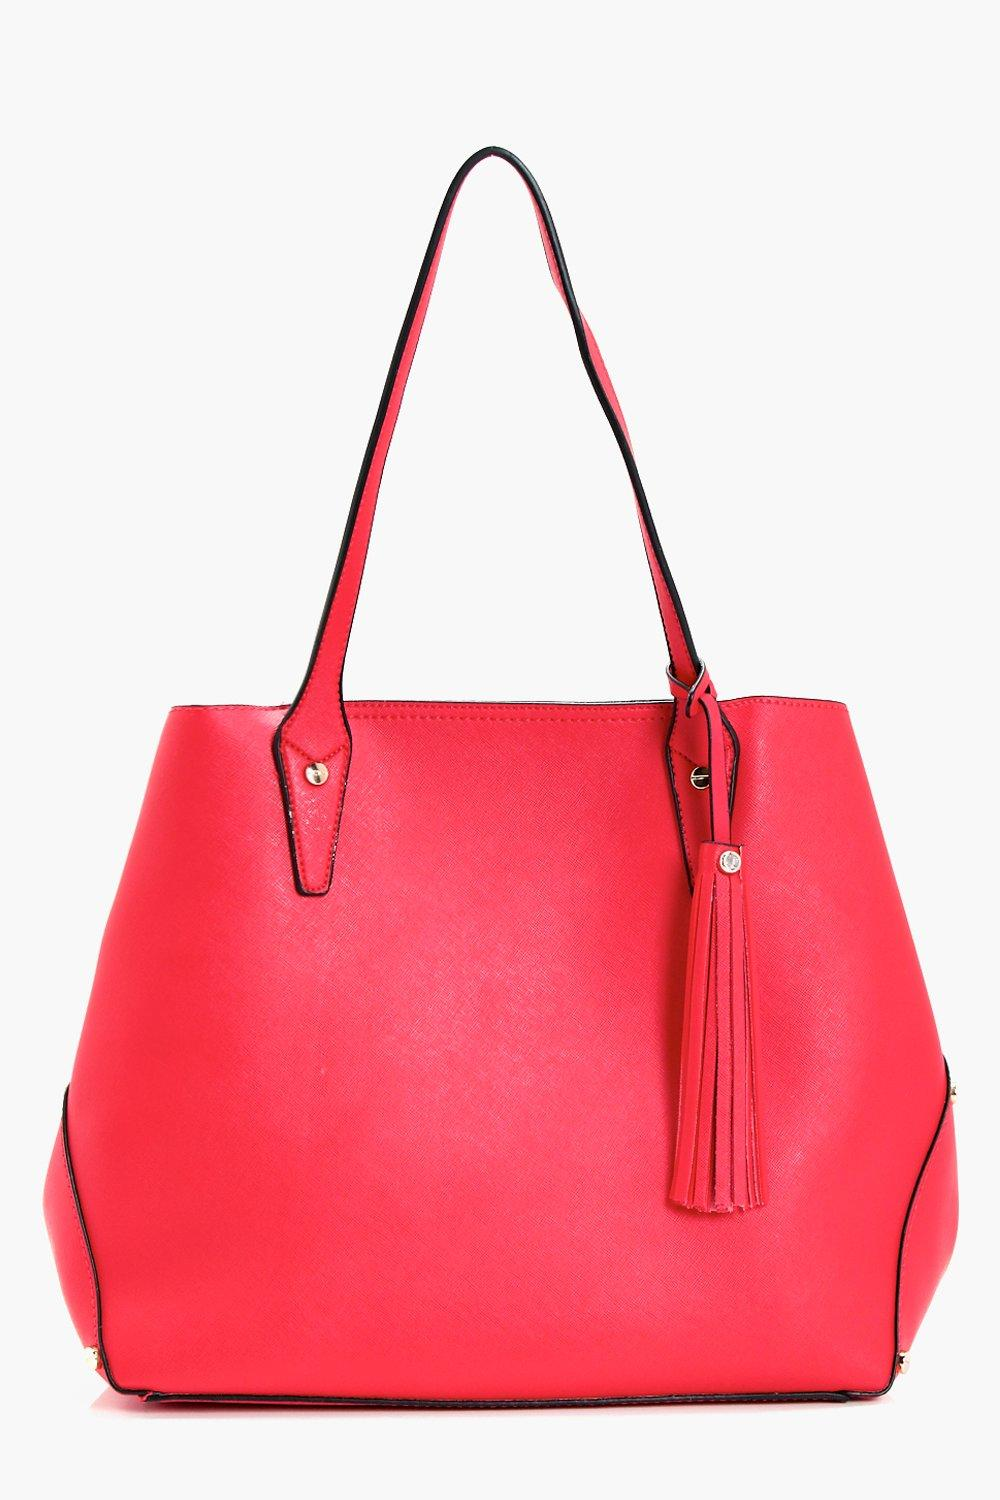 Crosshatch Multiway Tassel Tote Bag - red - Janey